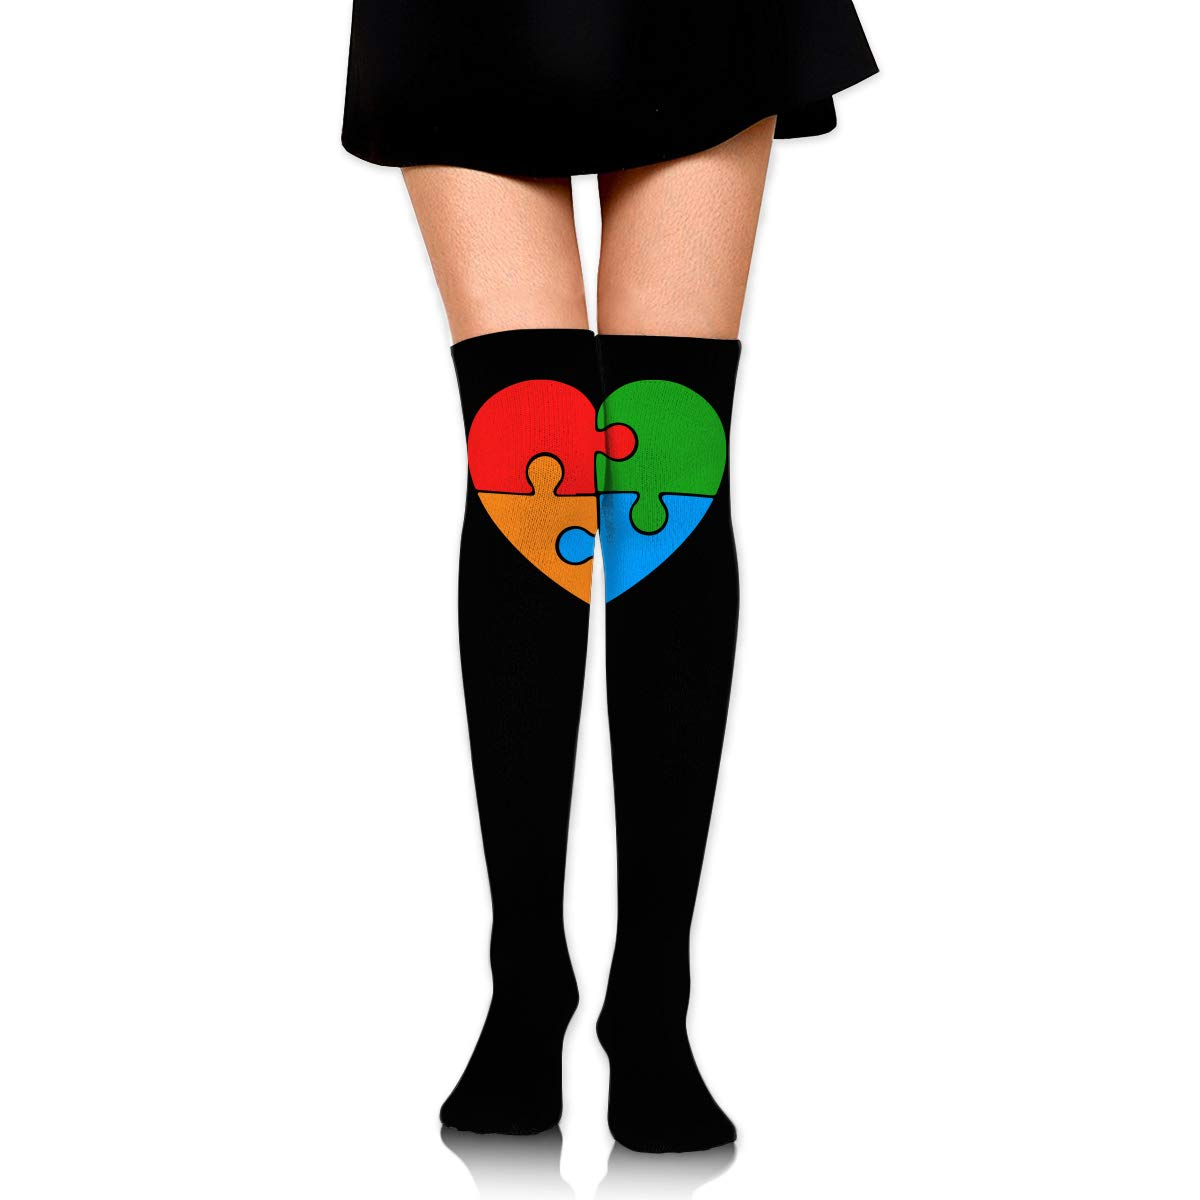 Awareness Puzzle Heart Over Knee Thigh High Stockings Fashion Socks Girls Womens Autism One Size